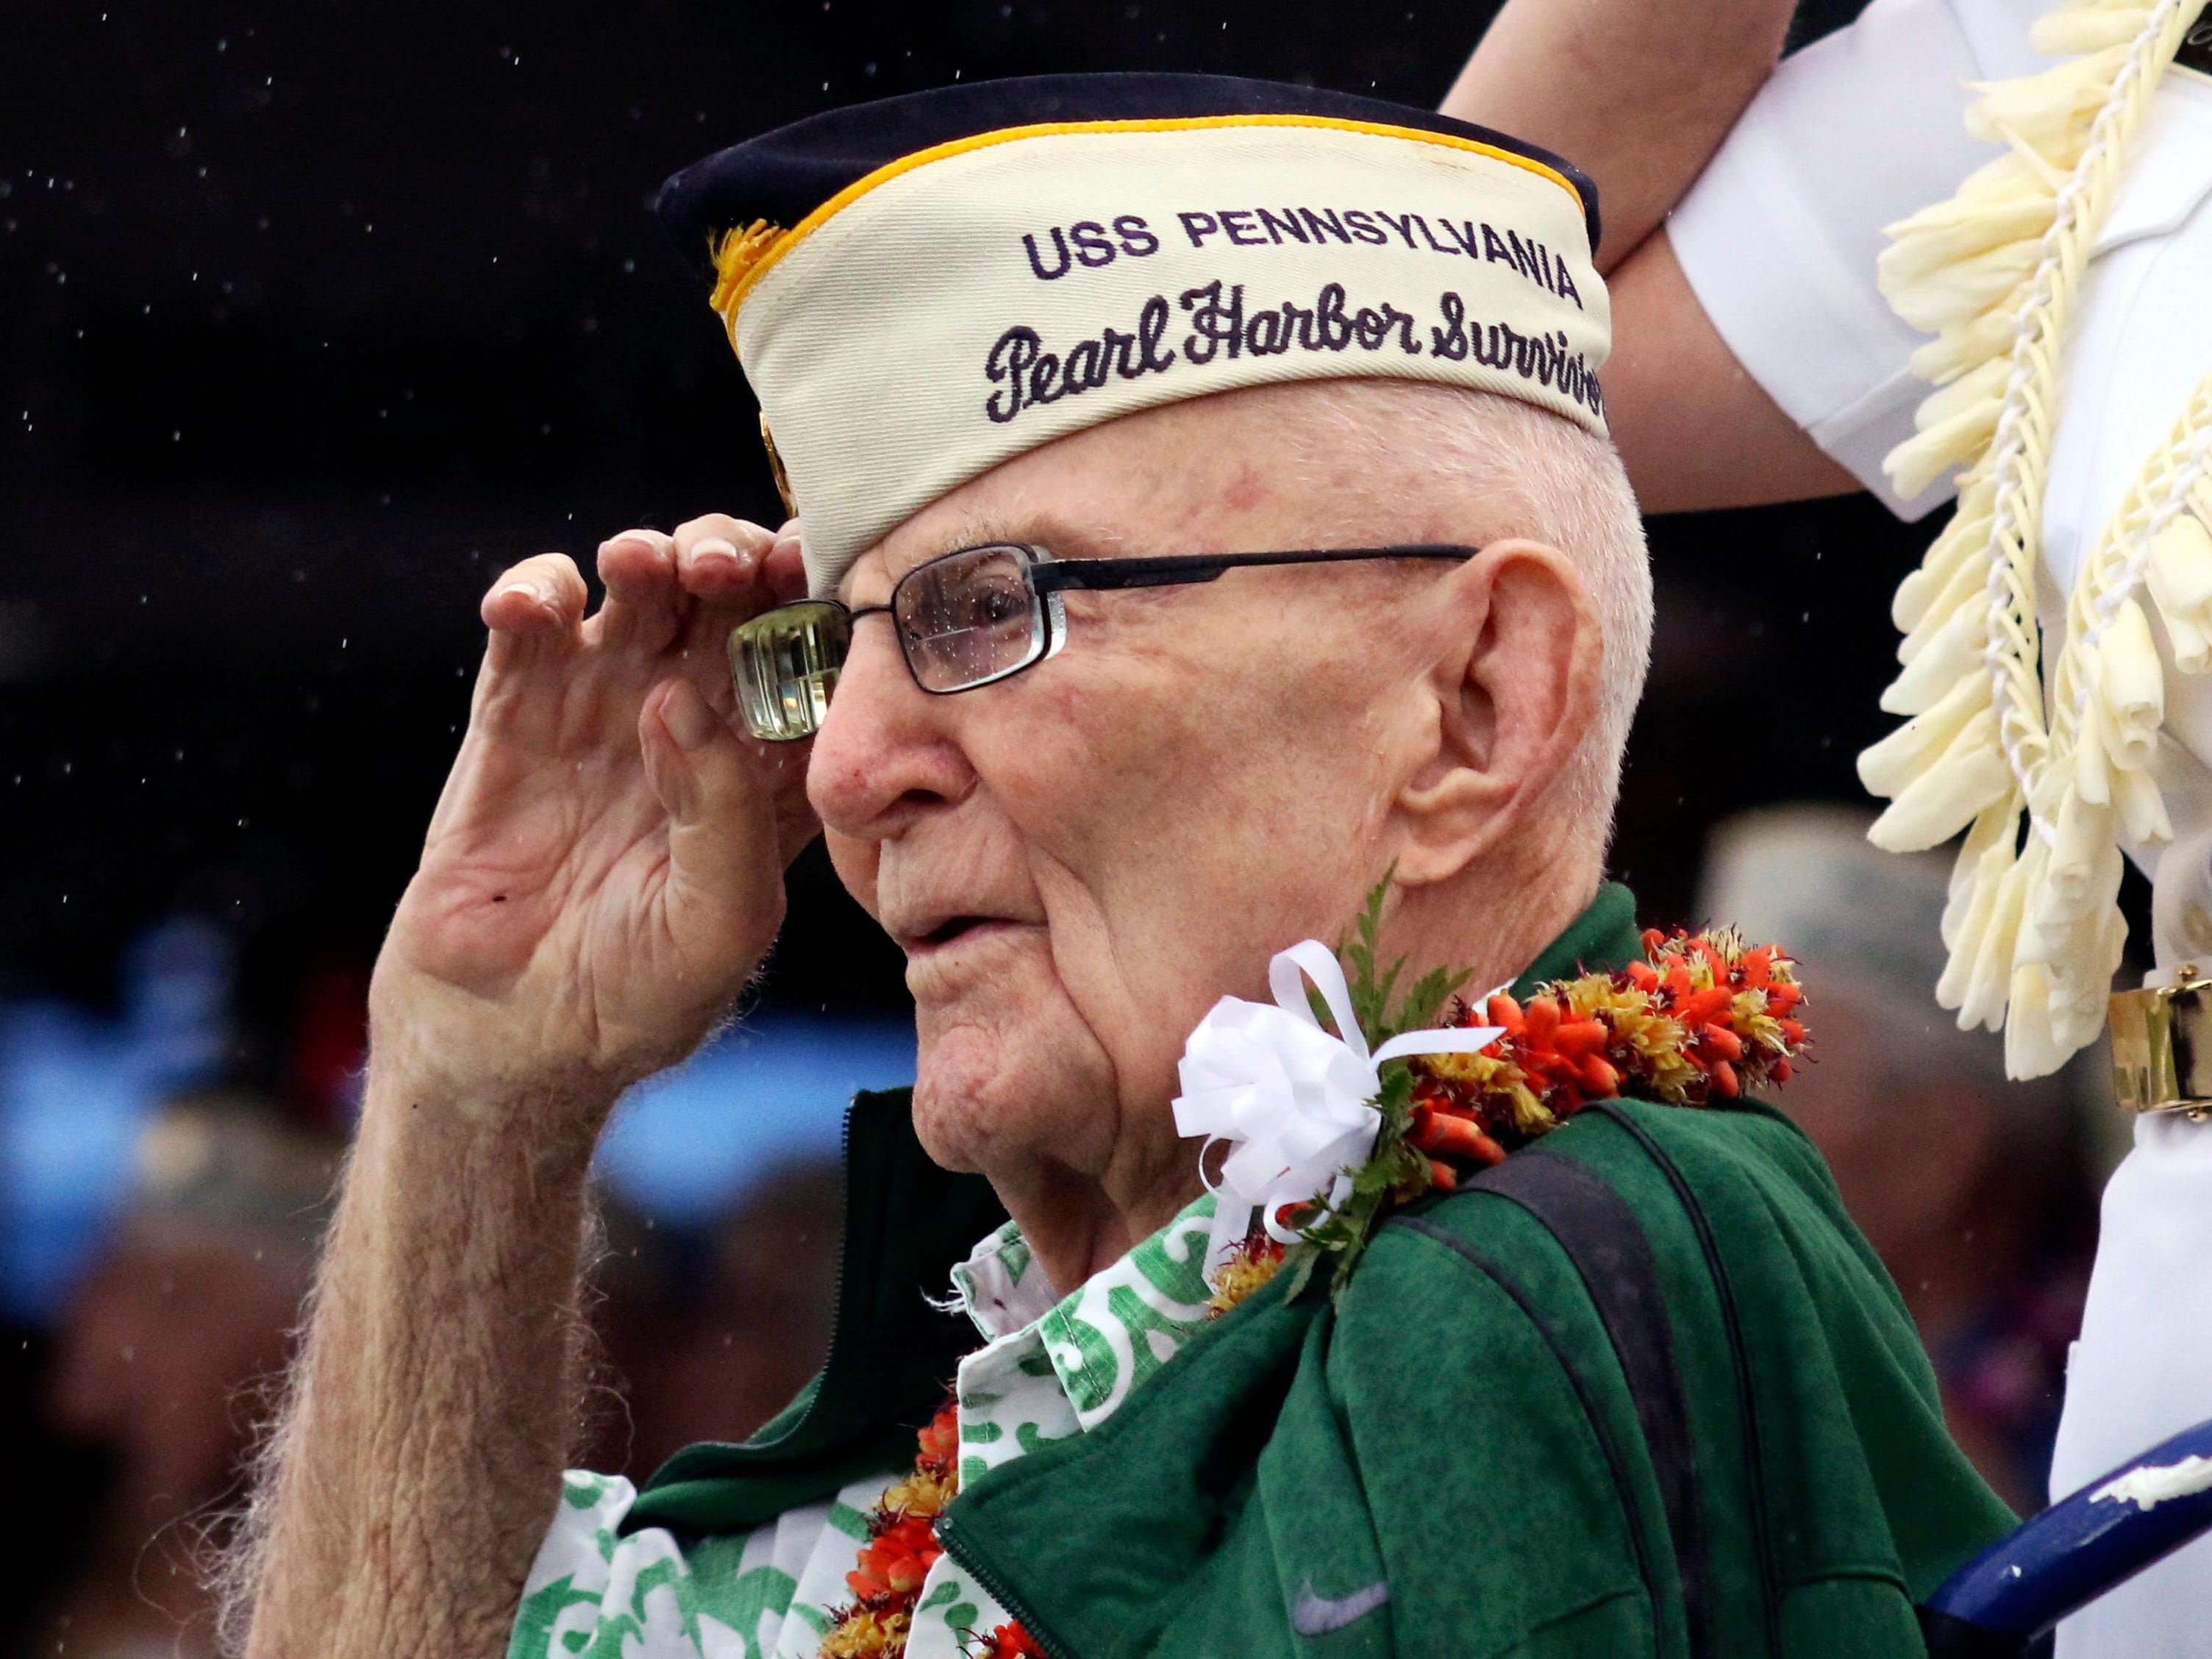 Everett Hyland, who survived the attack on Pearl Harbor as a crew member of the USS Pennsylvania, salutes on Friday, Dec. 7, 2018, as the USS Michael Murphy passes in Pearl Harbor, Hawaii during a ceremony marking the 77th anniversary of the Japanese attack. The Navy and National Park Service jointly hosted the remembrance ceremony at a grassy site overlooking the water and the USS Arizona Memorial.